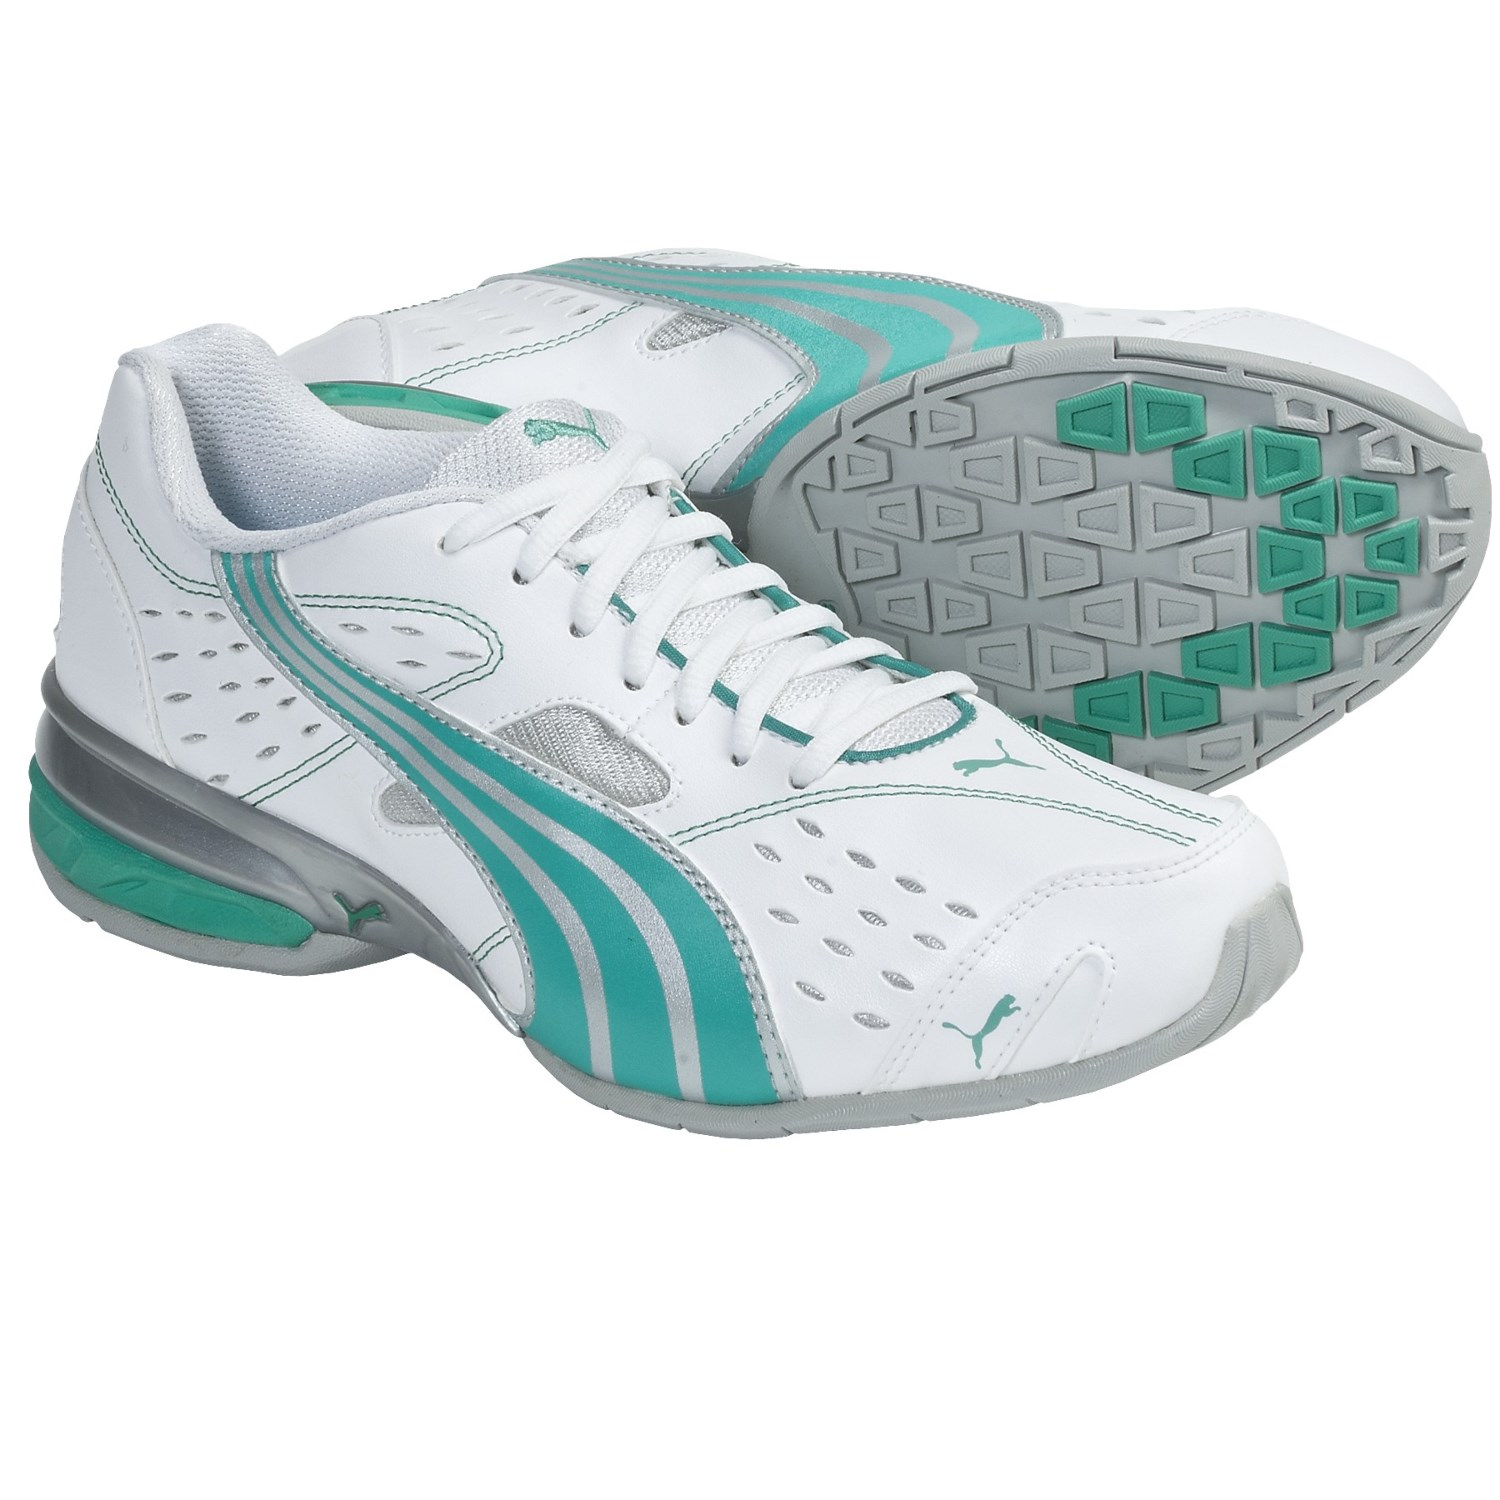 Tennis Shoes For Women Reviews